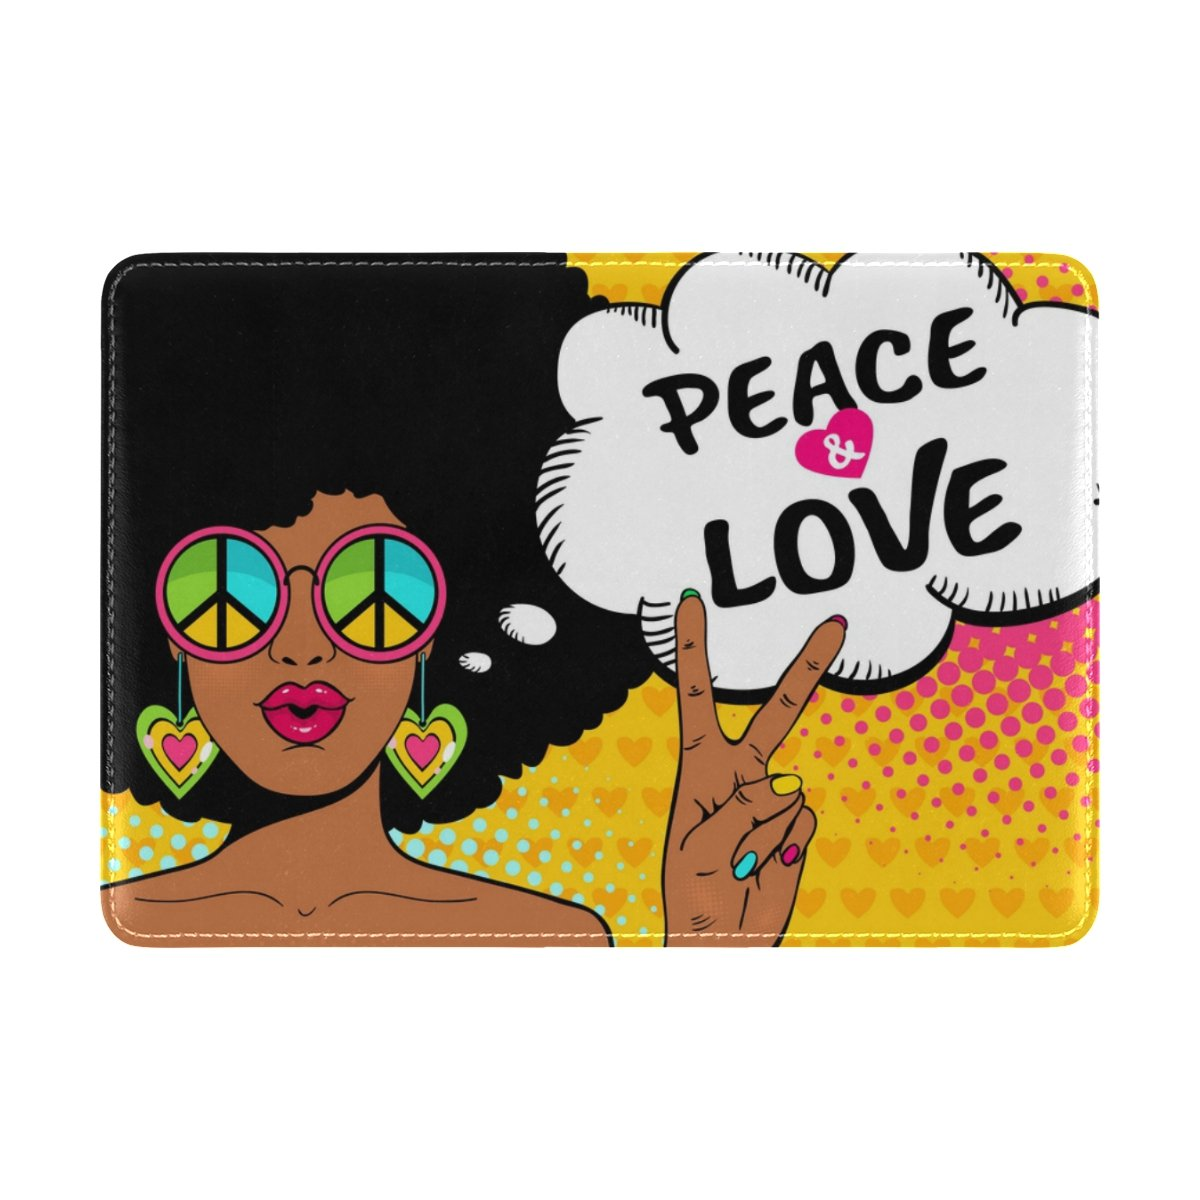 Cooper girl Afriacn Woman Peace And Love Passport Cover Holder Case Leather Protector for Men Women Kid